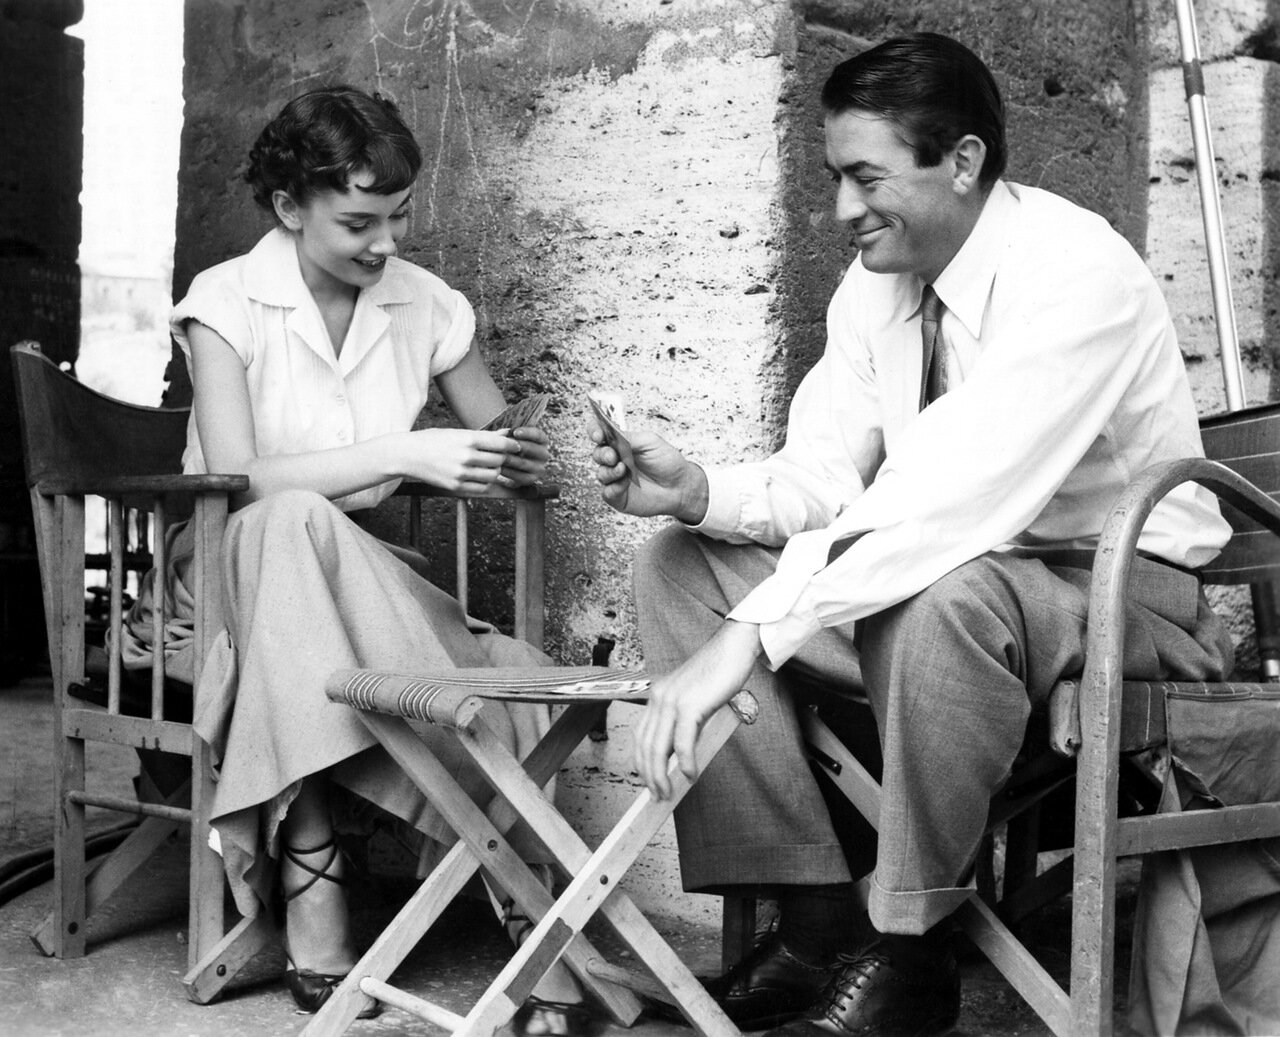 Audrey Hepburn and Gregory Peck relax in Rome during a break from shooting the 1953 film Roman Holiday